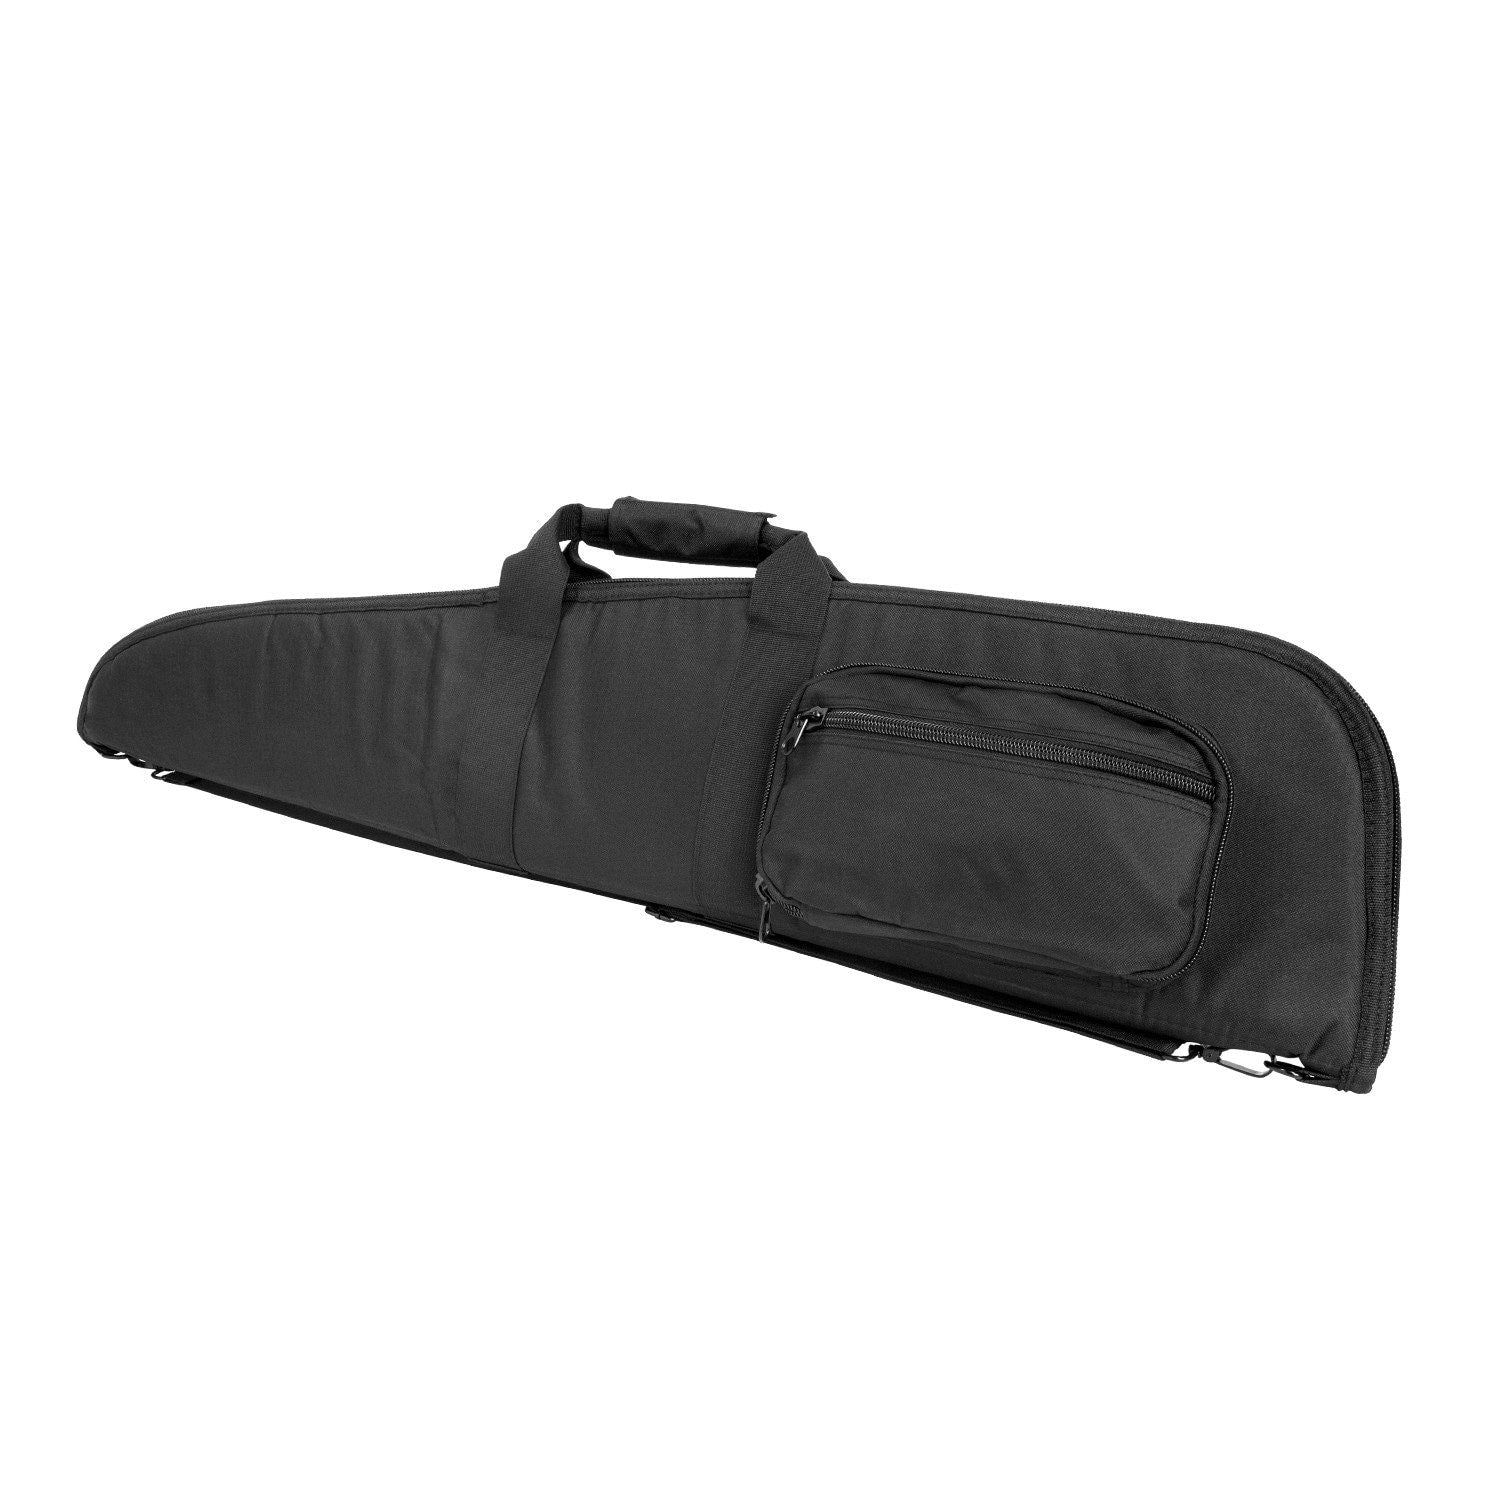 Gun Case (38 Inch X 9 Inch) - Black - Rifle/carbine Cases - Vism - Colonel Mustard